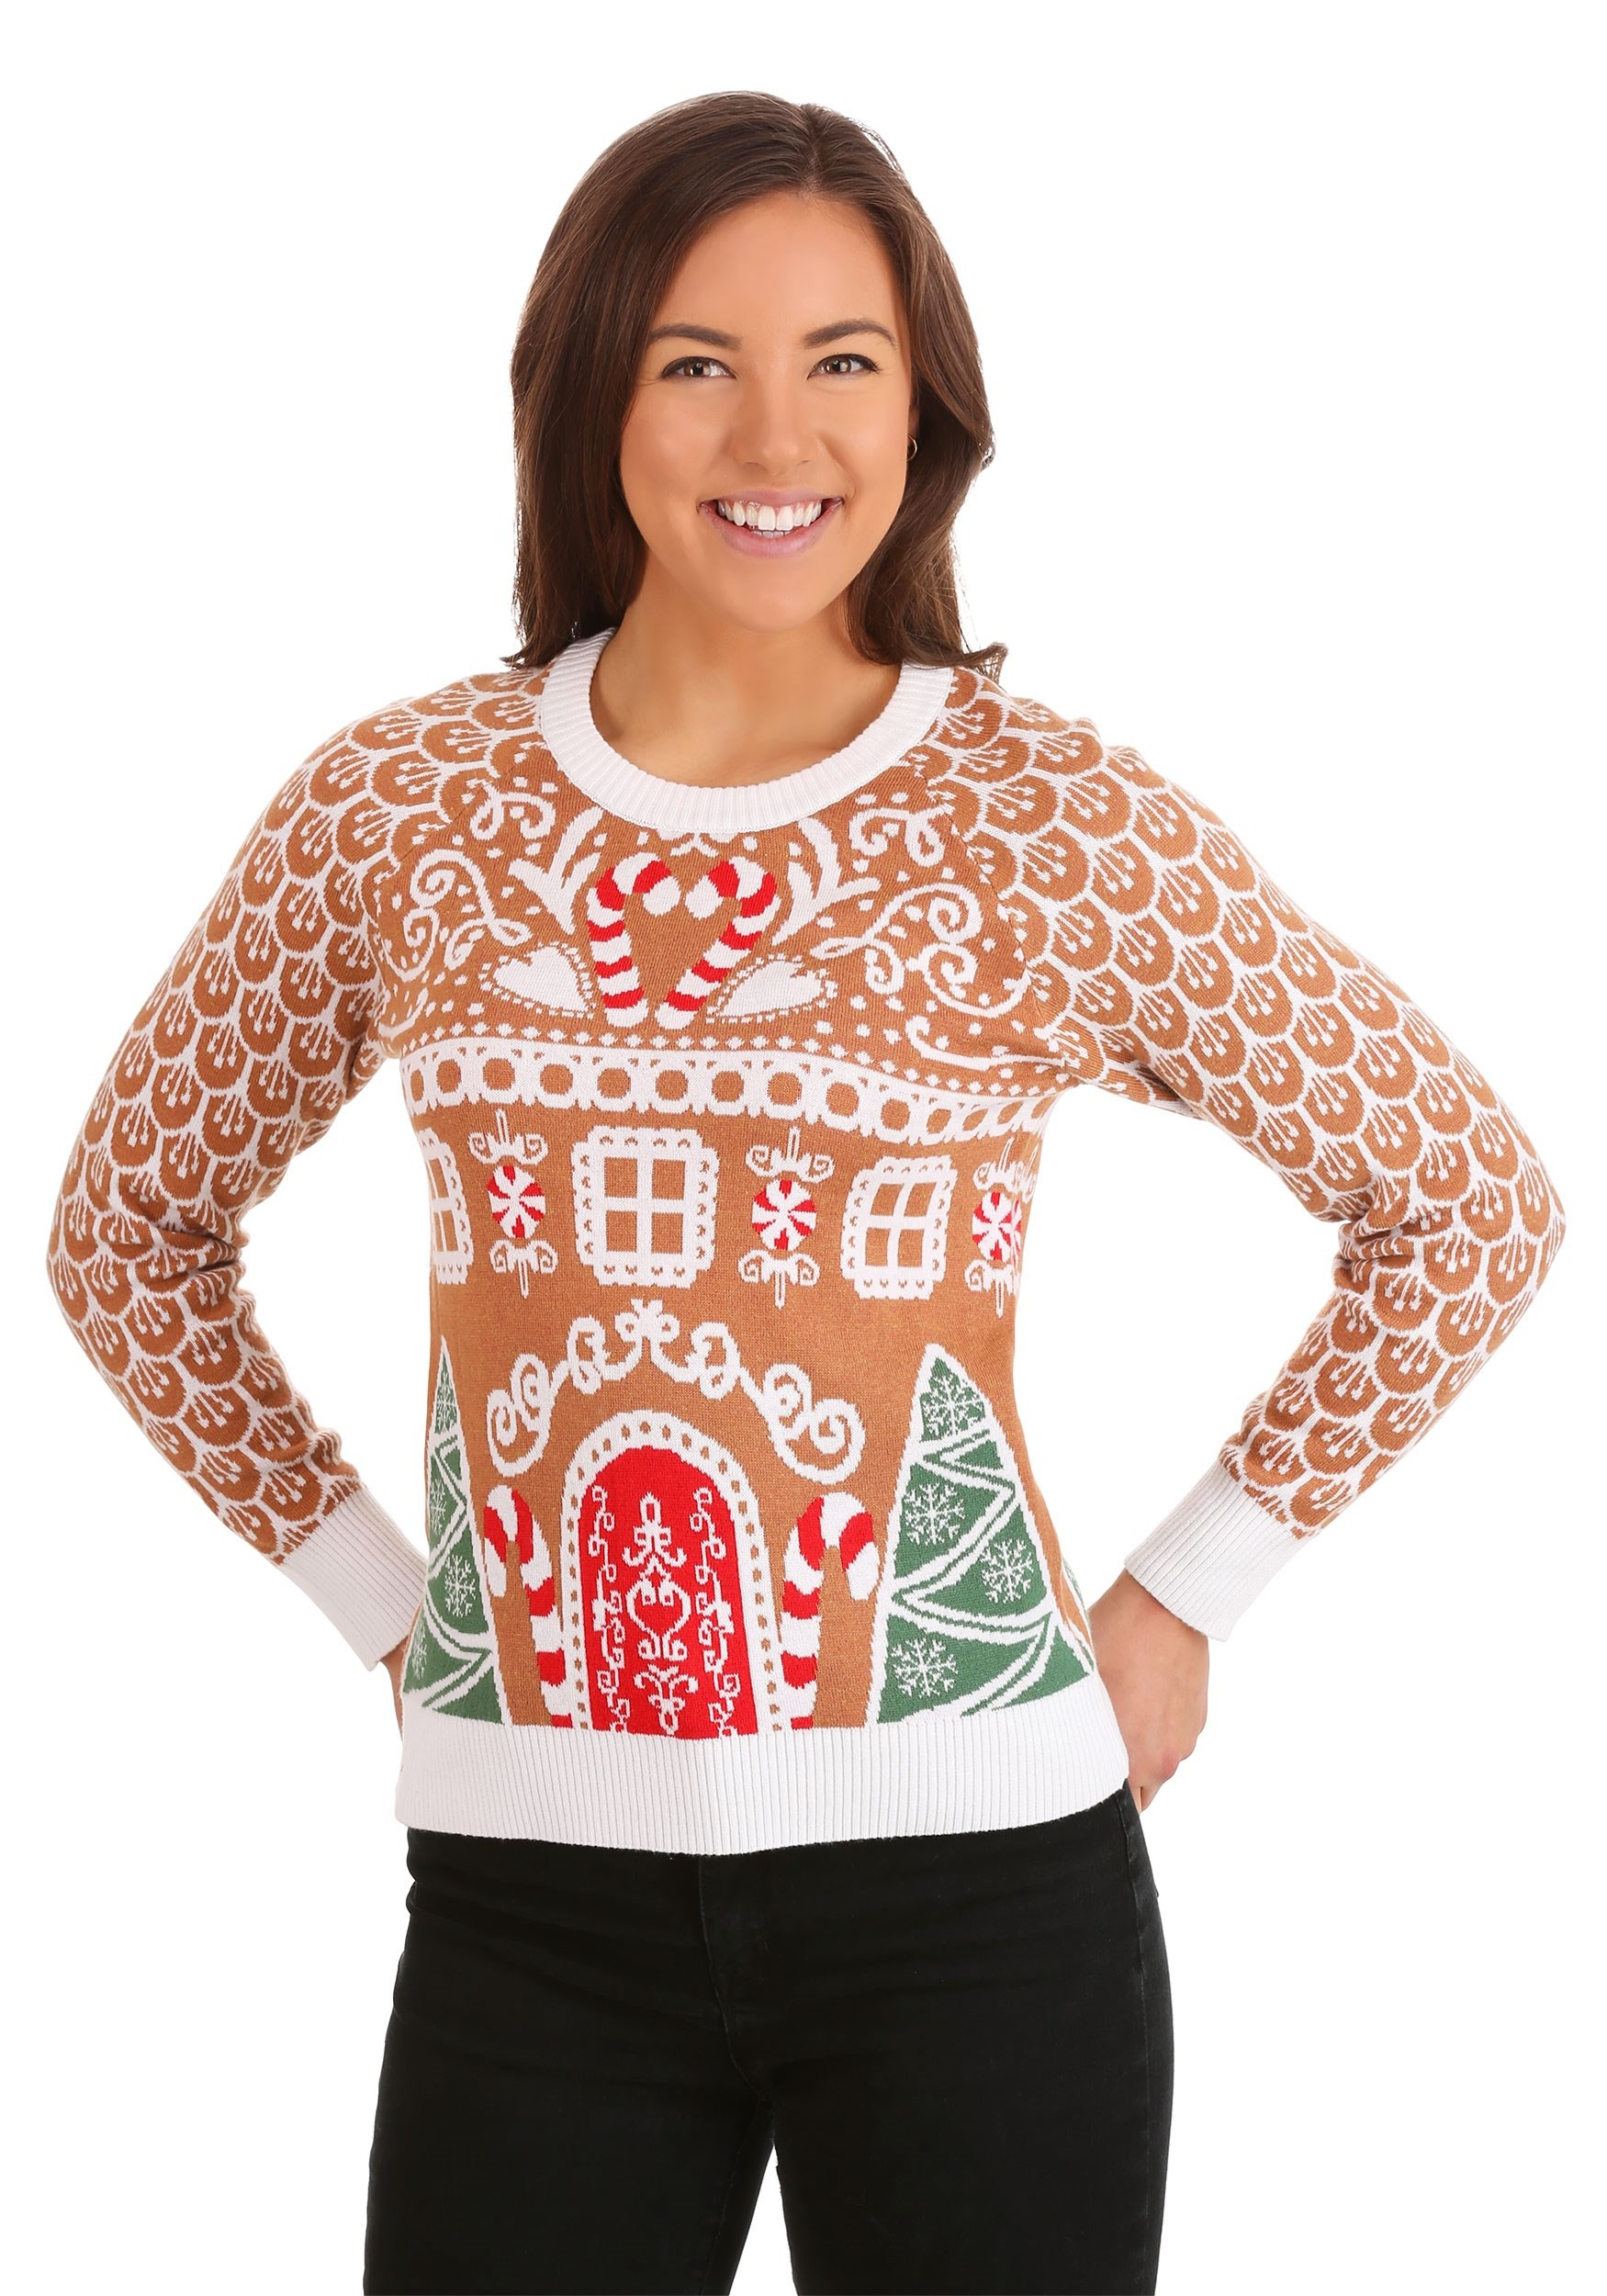 Gingerbread House Ugly Christmas Sweater for Women